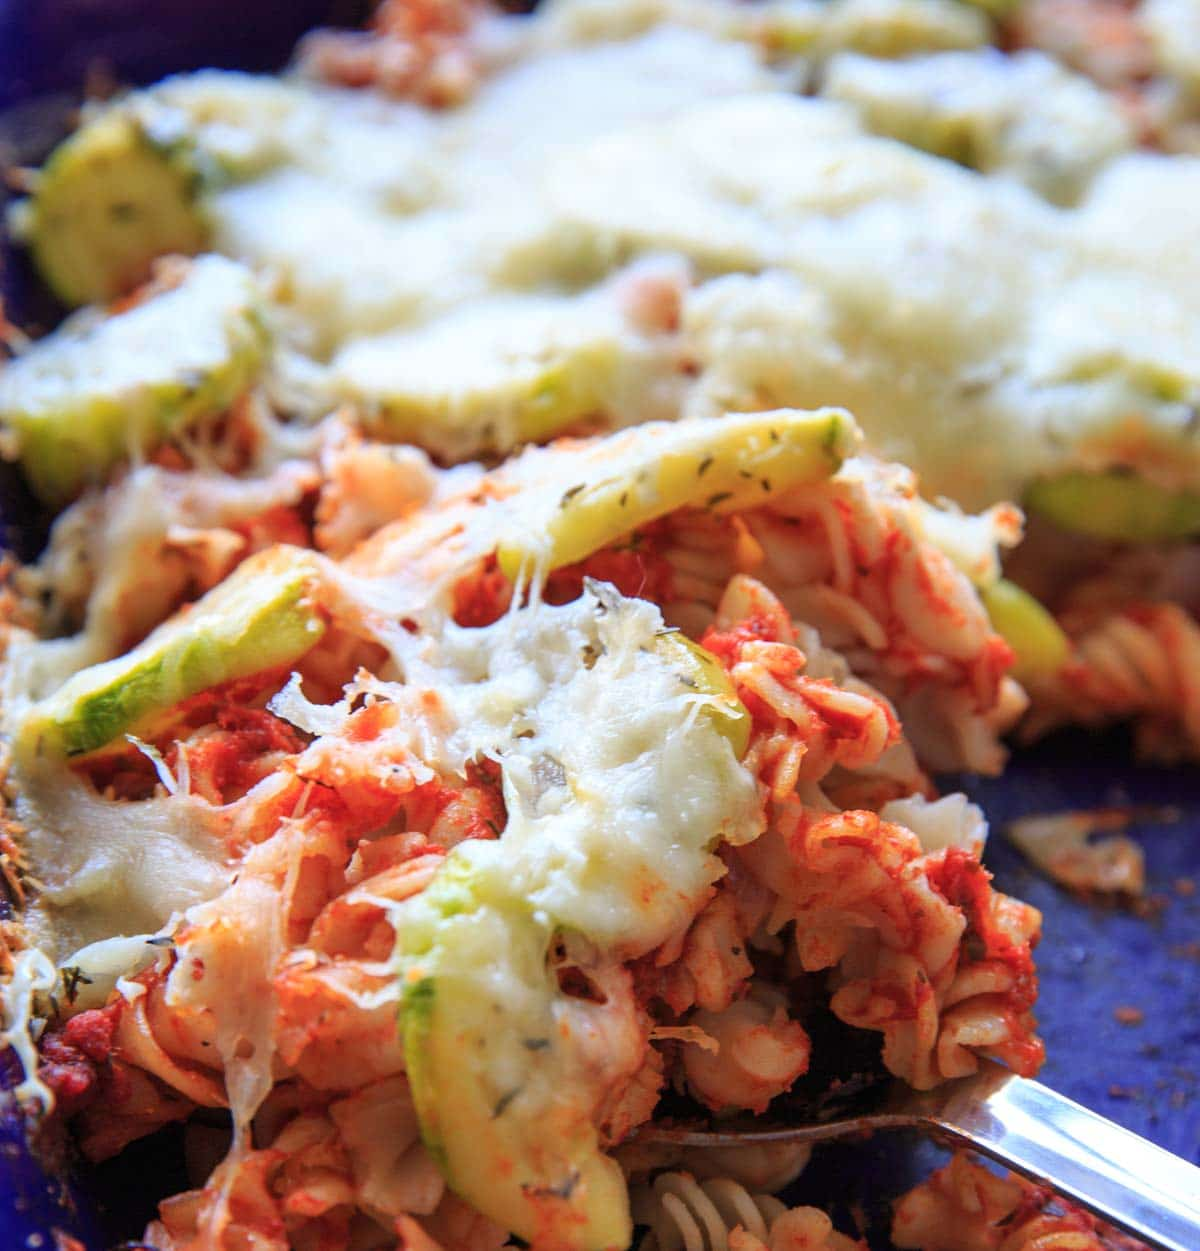 Zucchini Pasta Casserole with thyme. A super easy and healthy casserole that is healthy and easily gluten-free. With few ingredients (5 ingredients or less), dinner will be on the table in no time! Up close shot of pasta casserole.